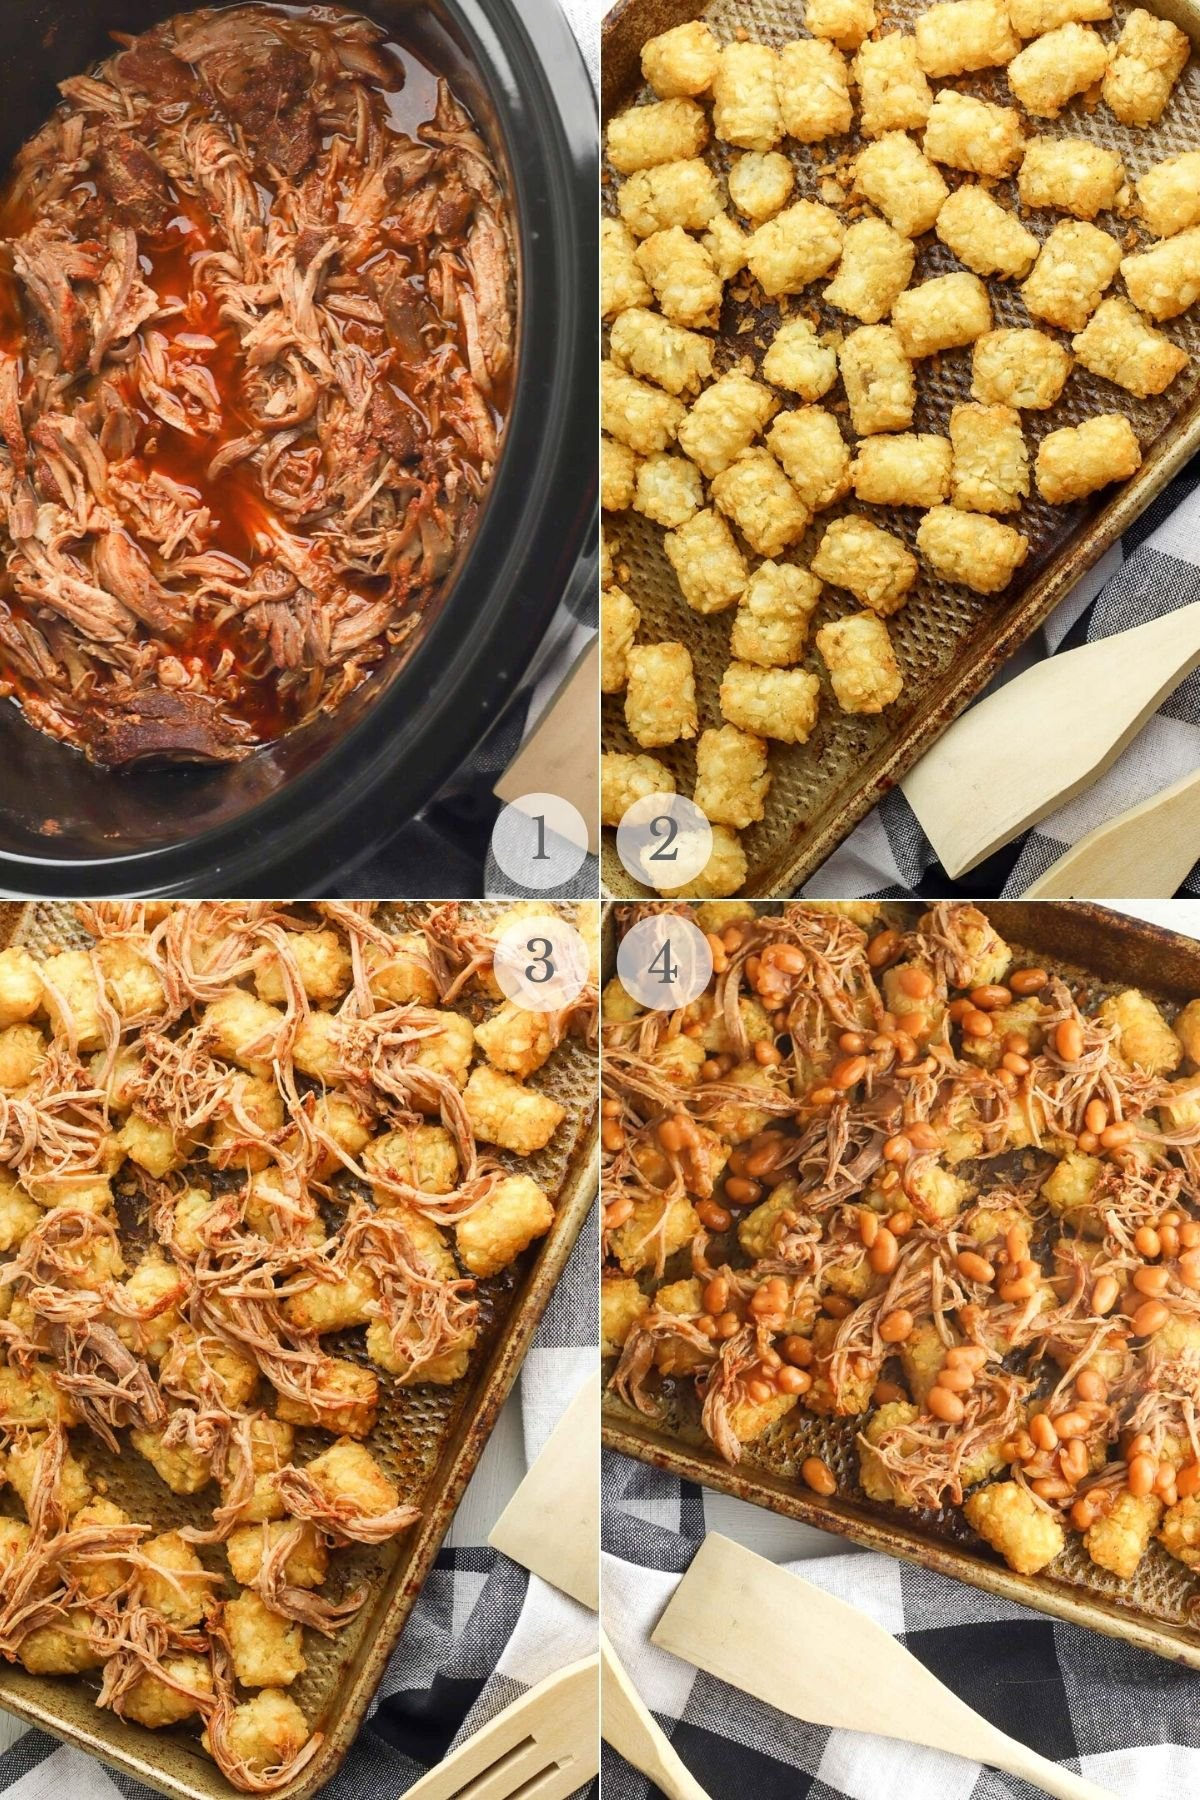 Pulled Pork totchos recipe steps 1-4